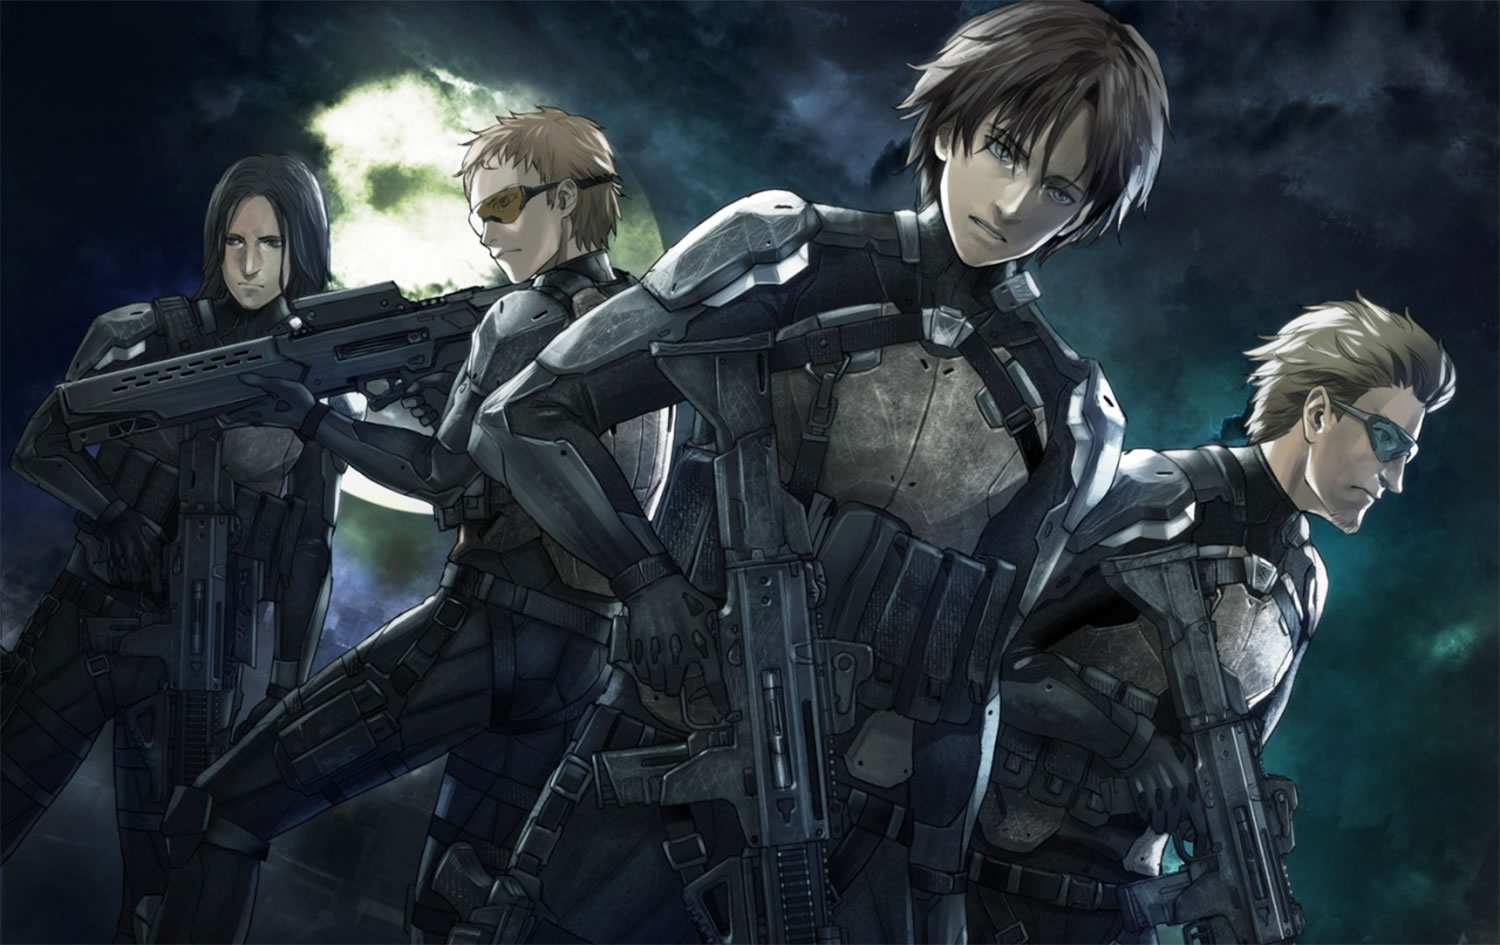 sci-fi, men in space suits with weapons, Genocidal Organ